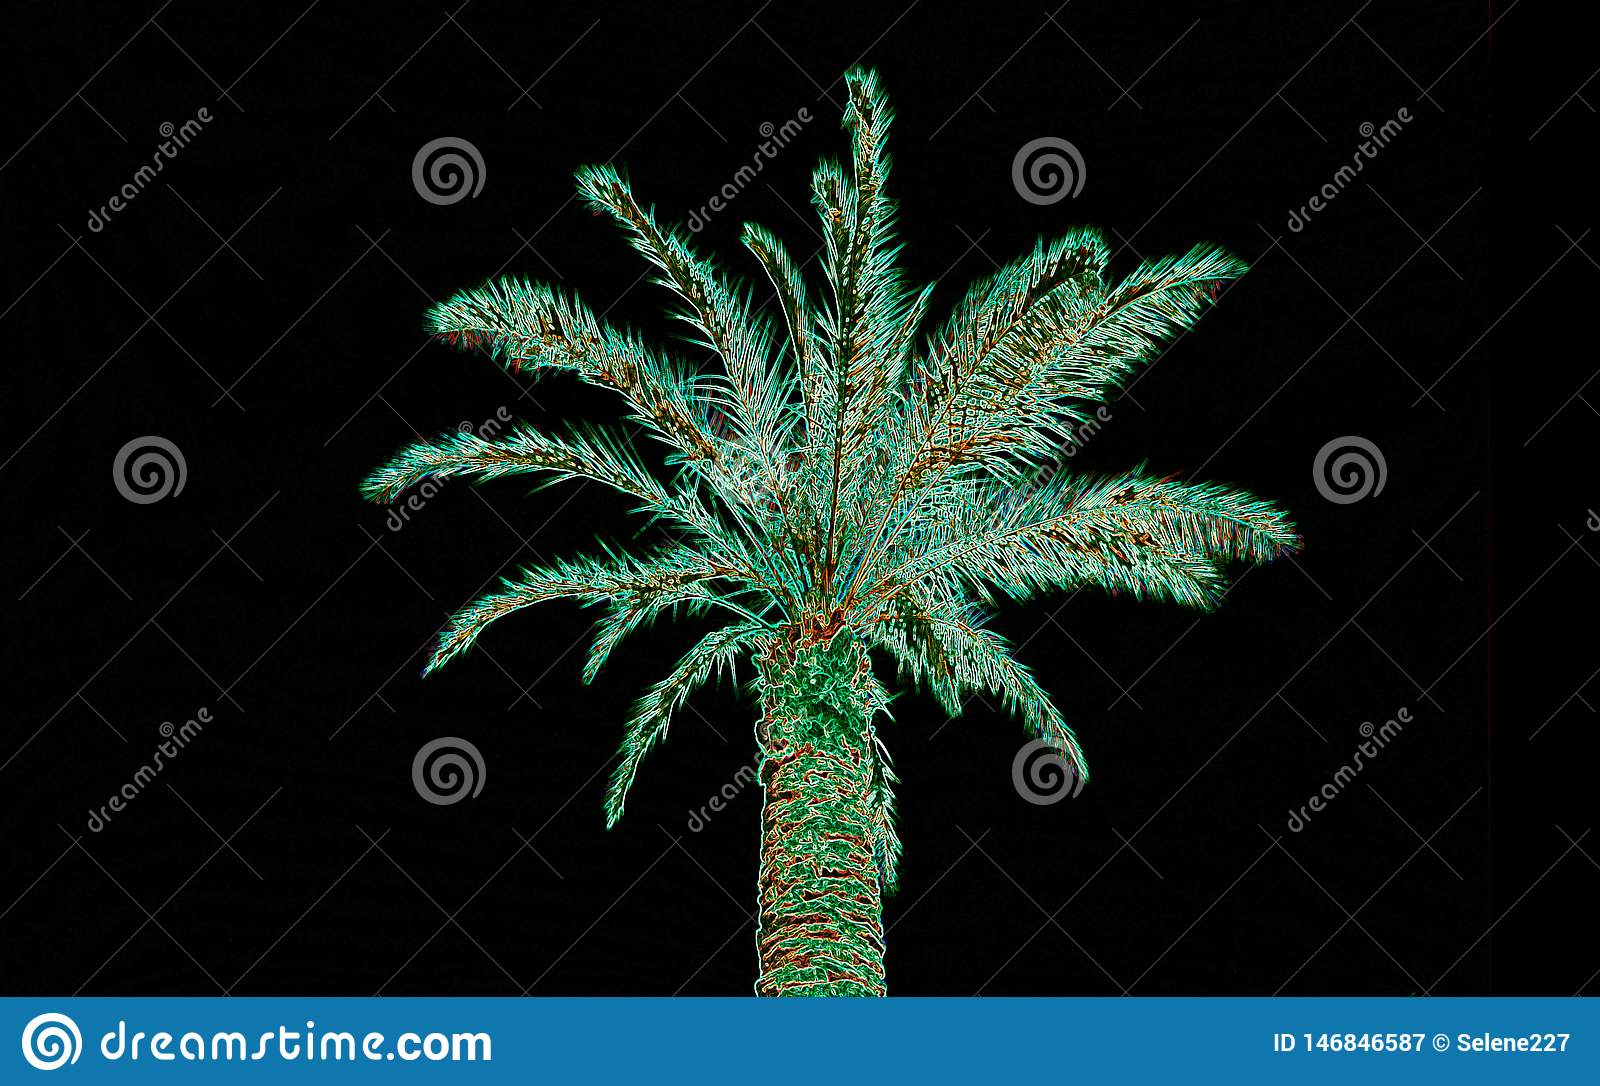 Abstract ufo green colors palm